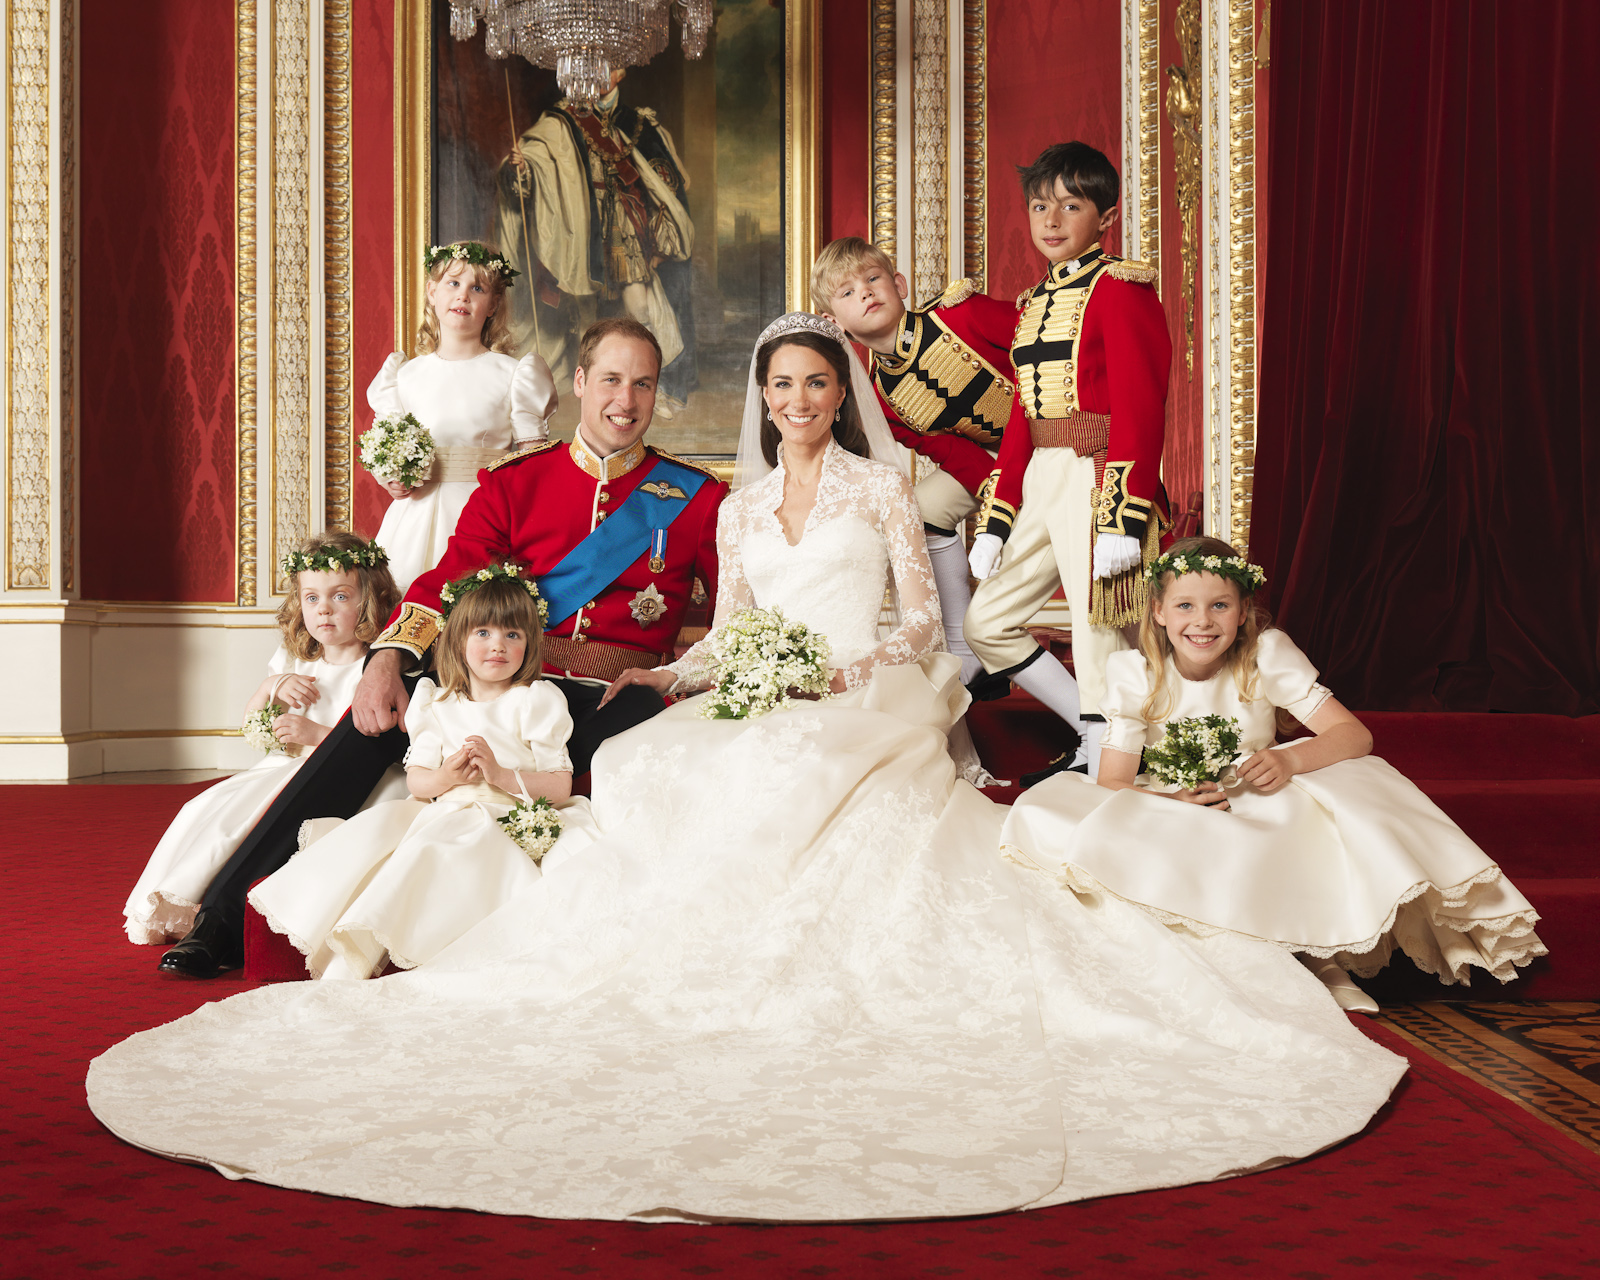 The wedding of Prince William and Miss Catherine Middleton | The ...